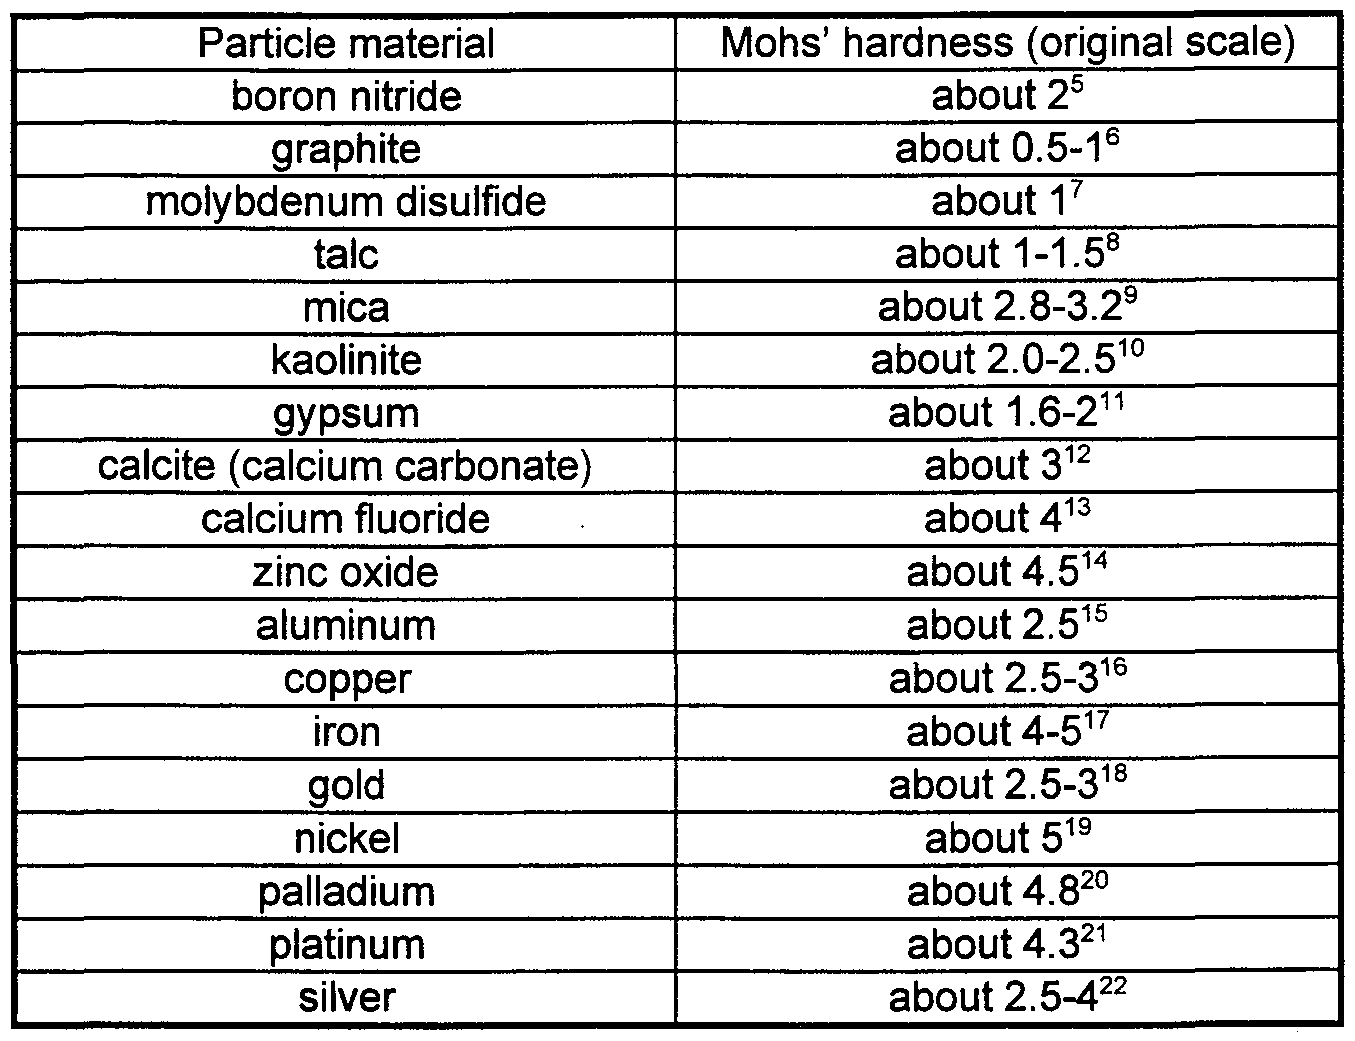 Worksheets Mohs Hardness Scale Worksheet mohs hardness scale www